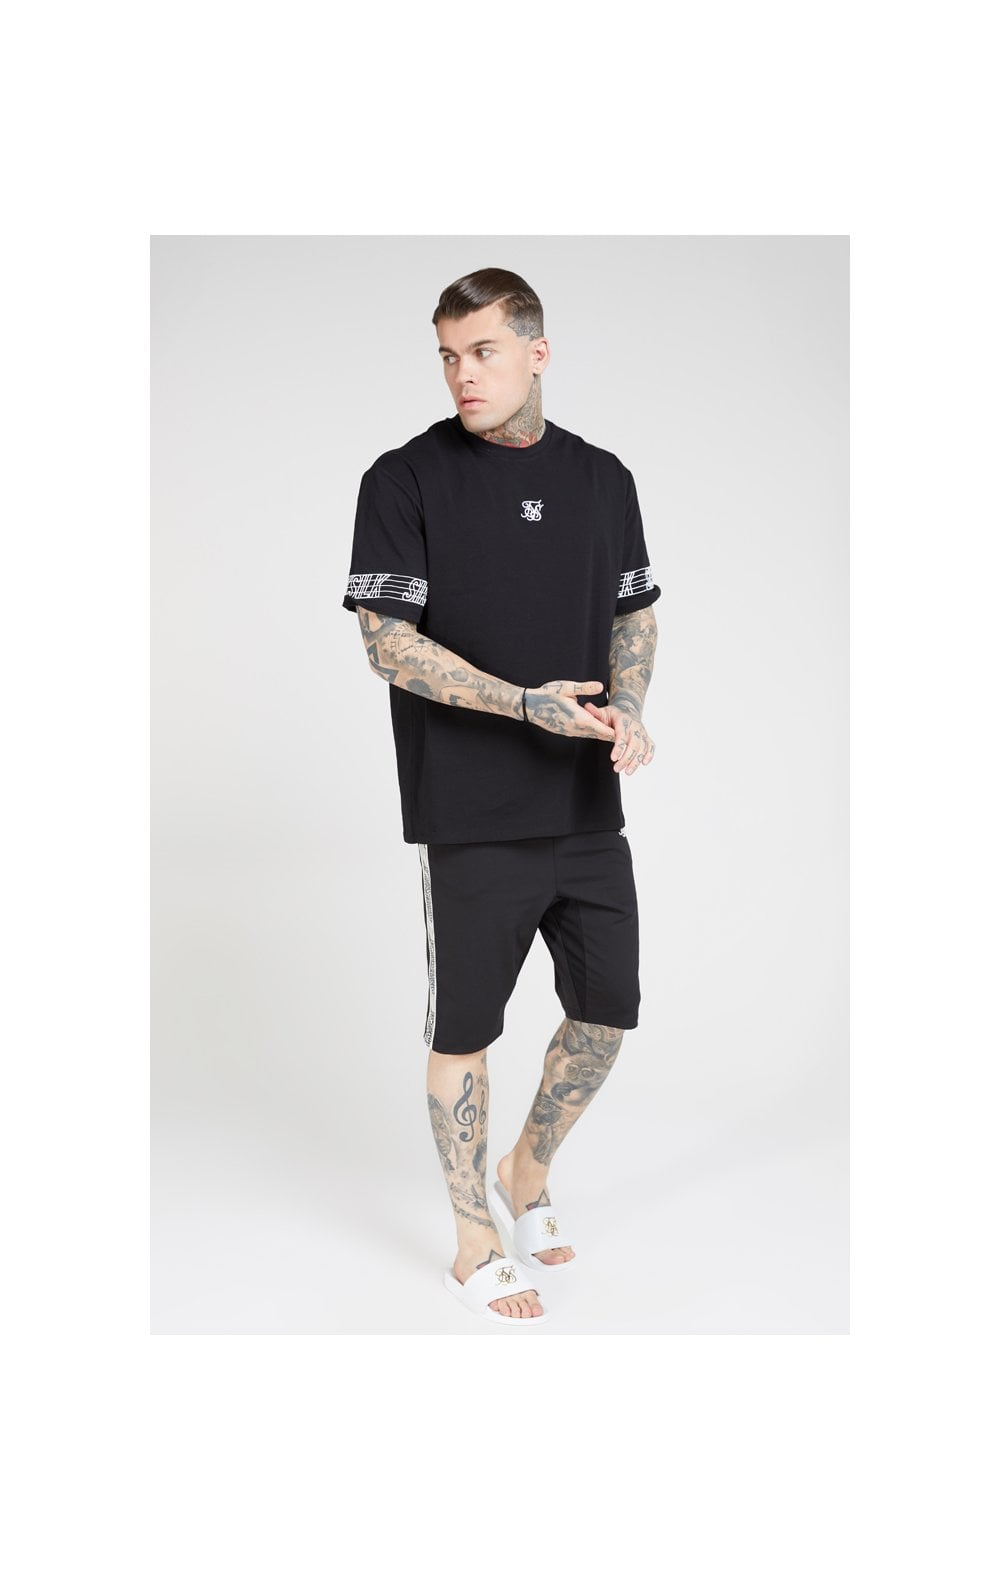 SikSilk S/S Essential Runner Oversized Tee – Black (3)